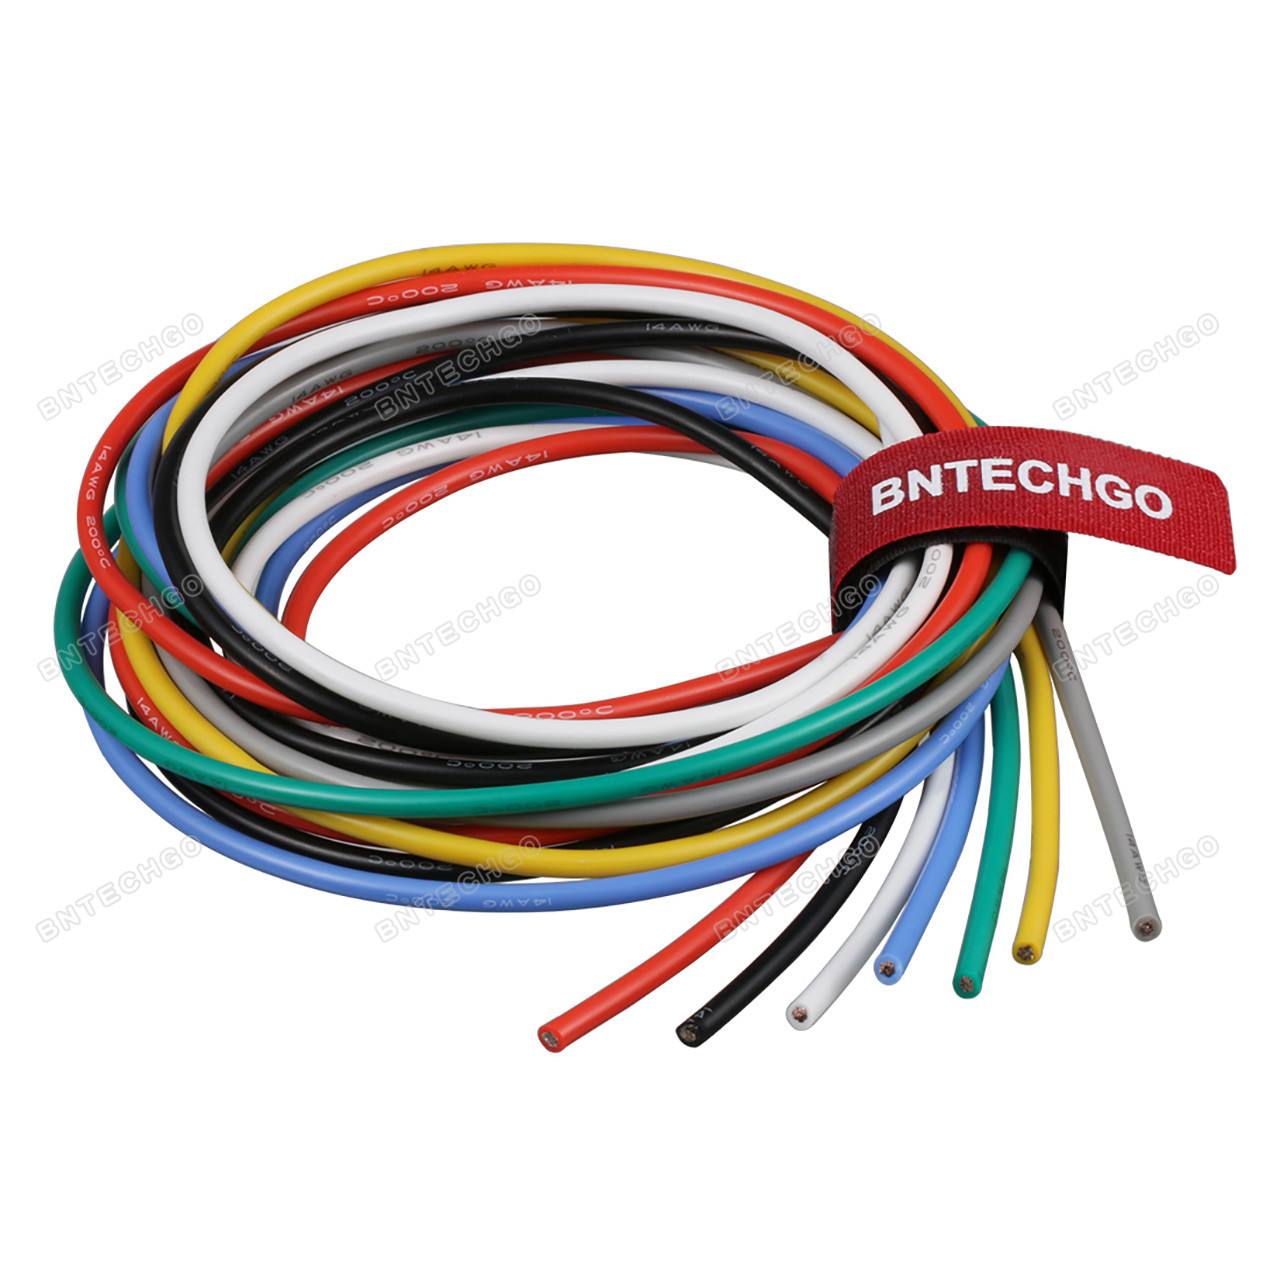 BNTECHGO 14 Gauge Silicone Wire Kit Ultra Flexible 7 Color High Resistant on